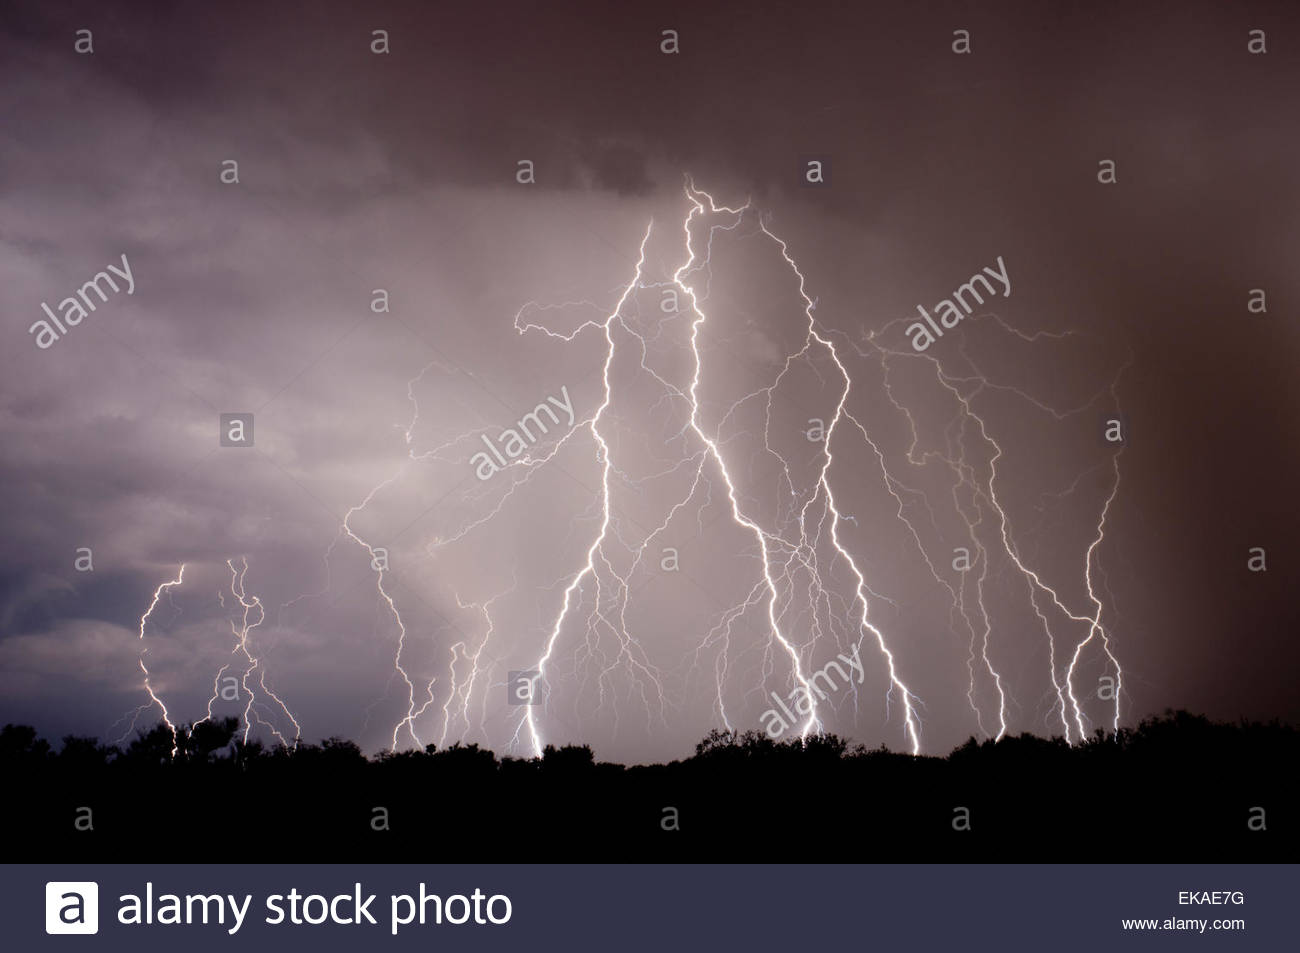 Lightning strikes in the desert north of Tucson Arizona in a summer monsoon type thunderstorm.Rain falling in dessert. - Stock Image